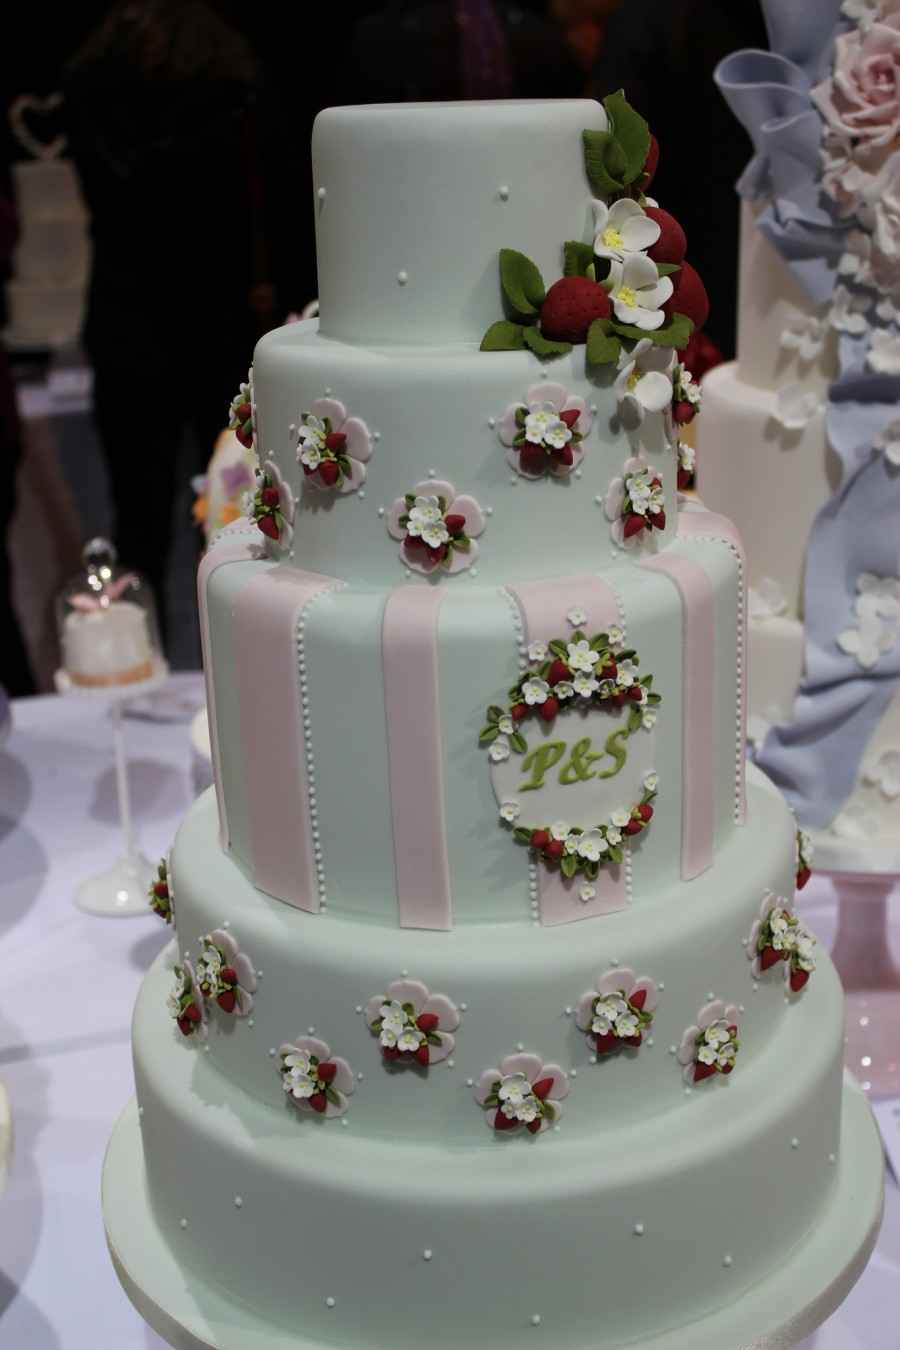 Top Wedding Cake - Painted Cakes